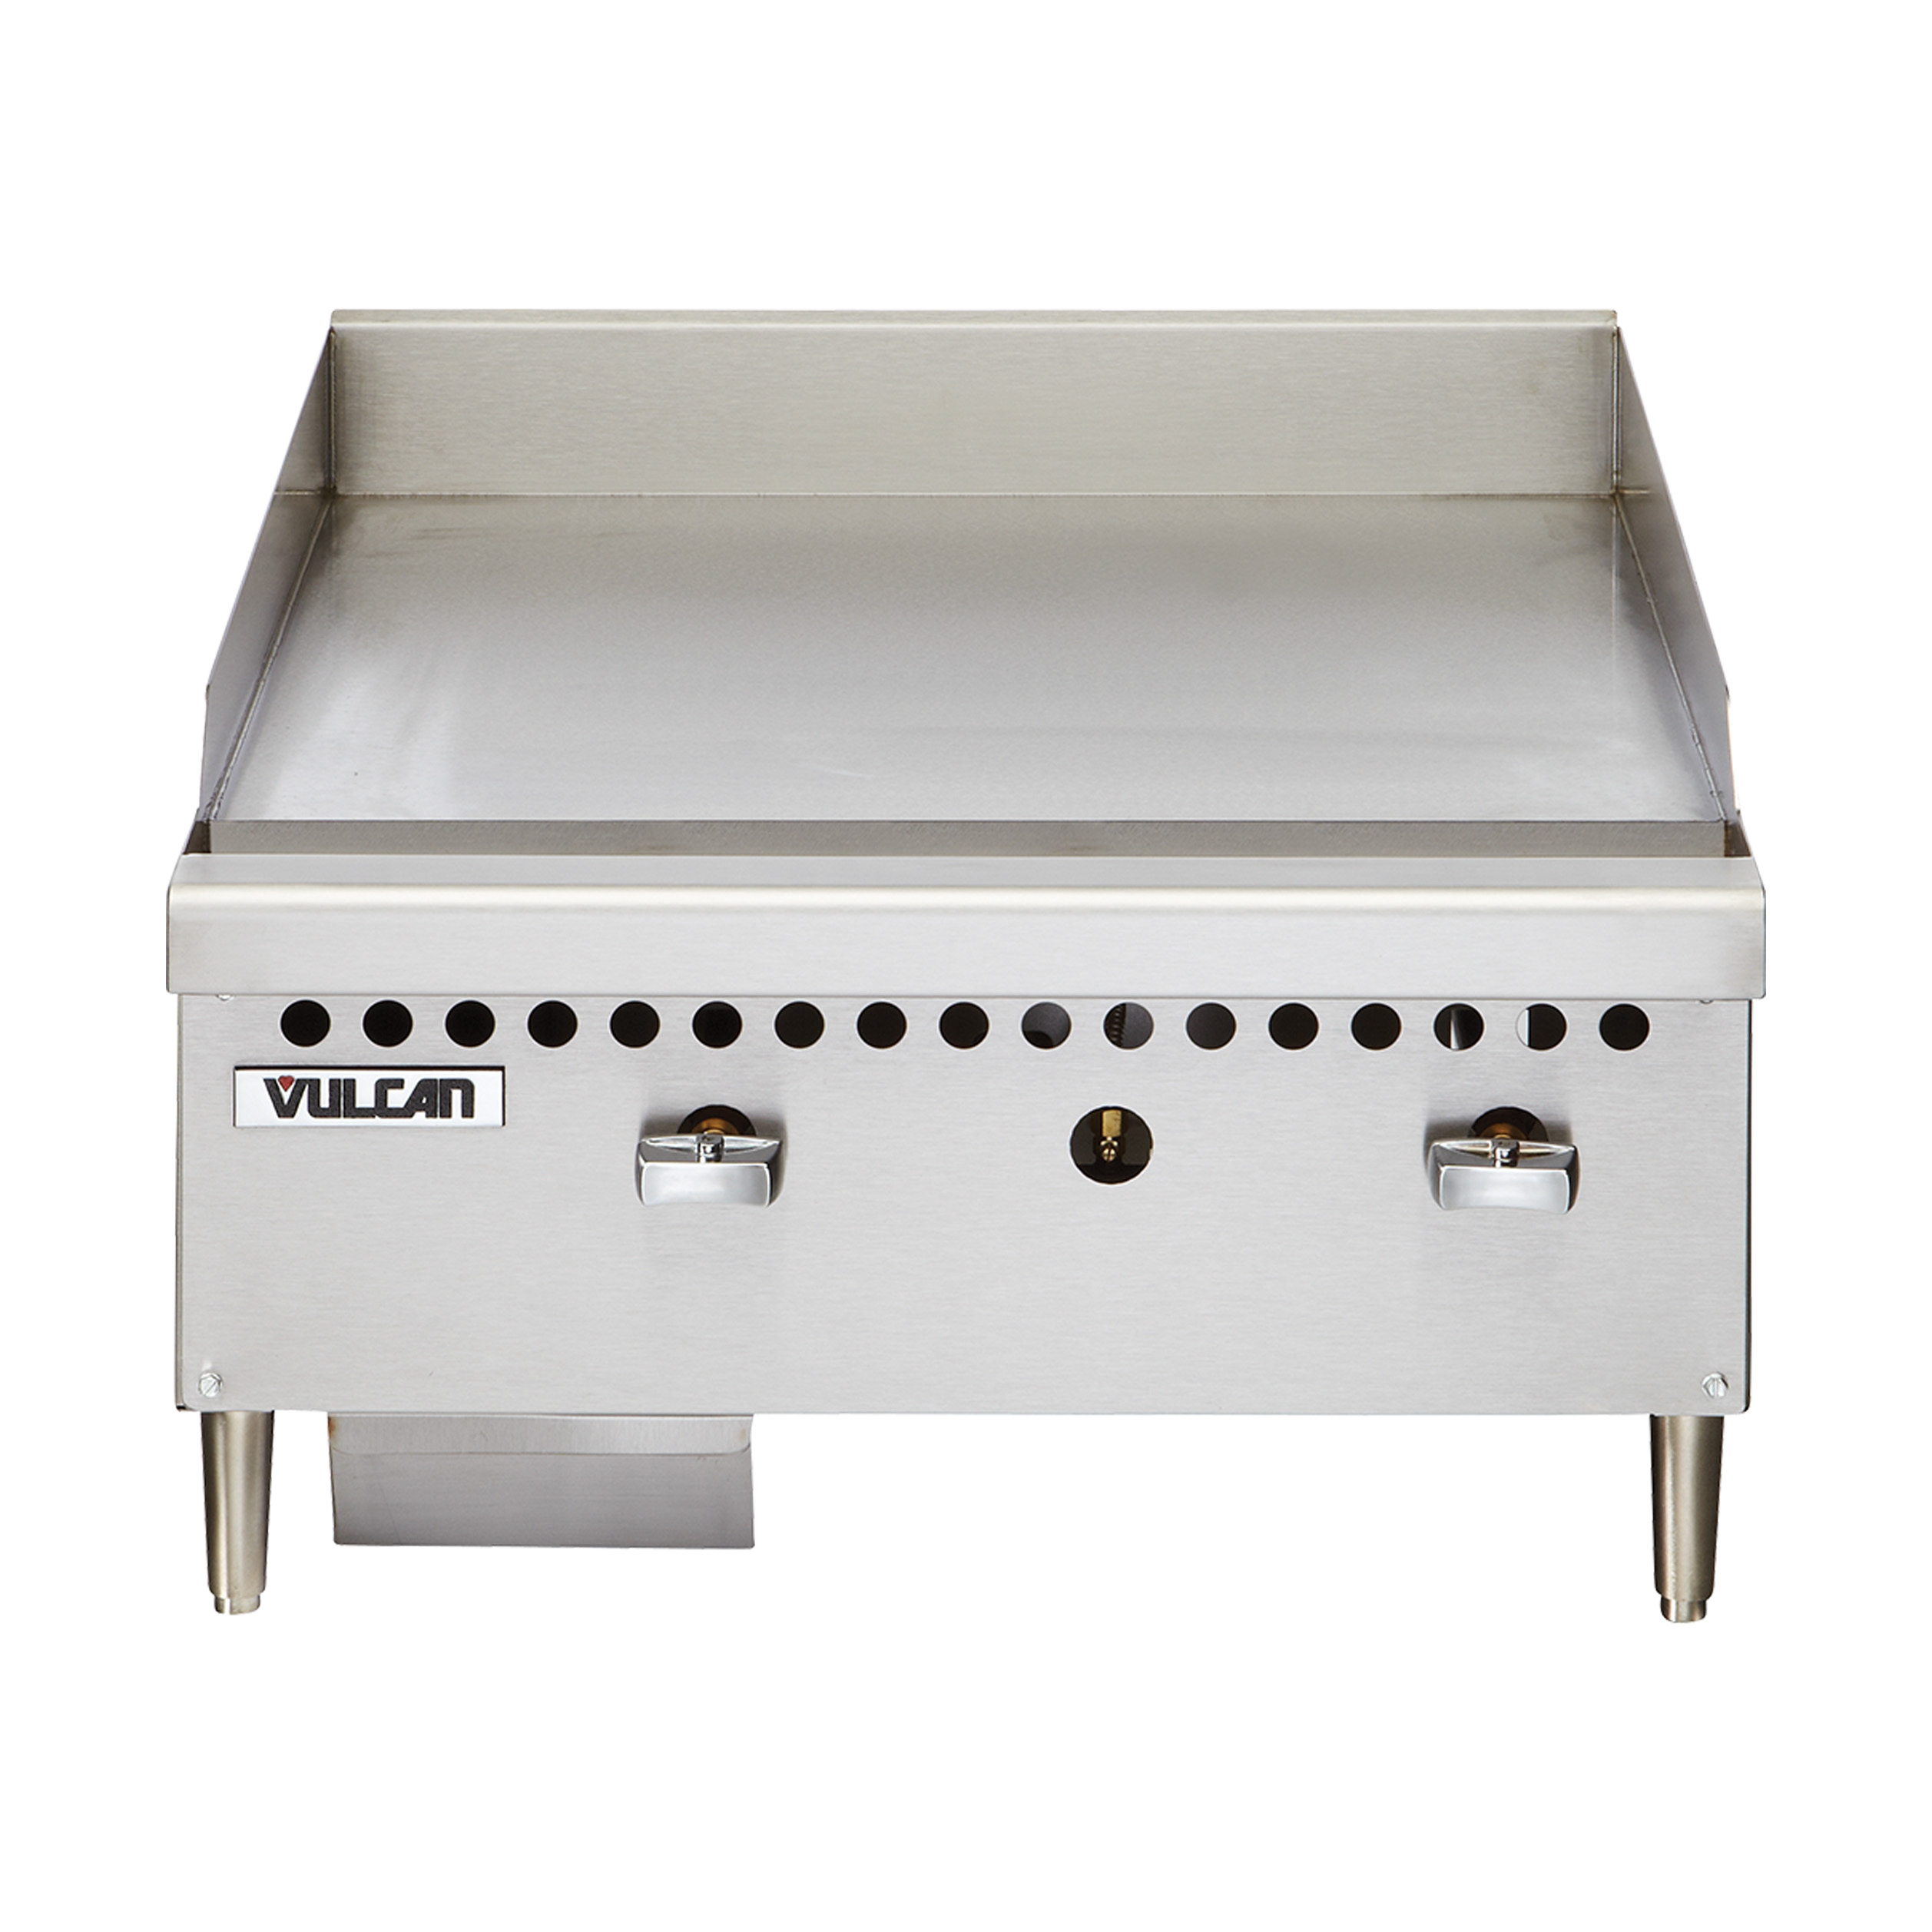 Vulcan VCRG48-M griddle, gas, countertop